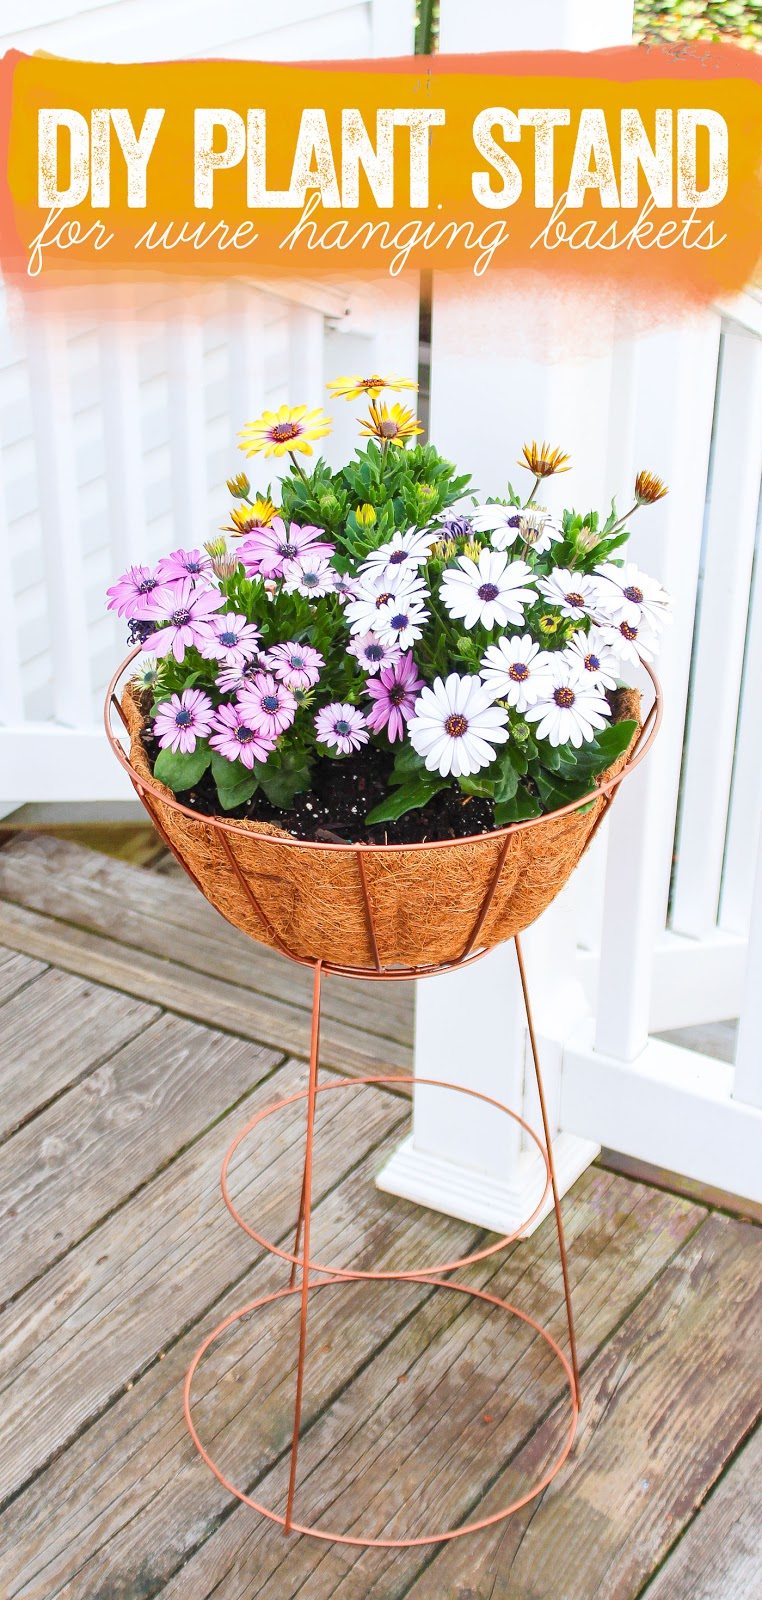 DIY wire hanging basket plant stand for planting spring flowers